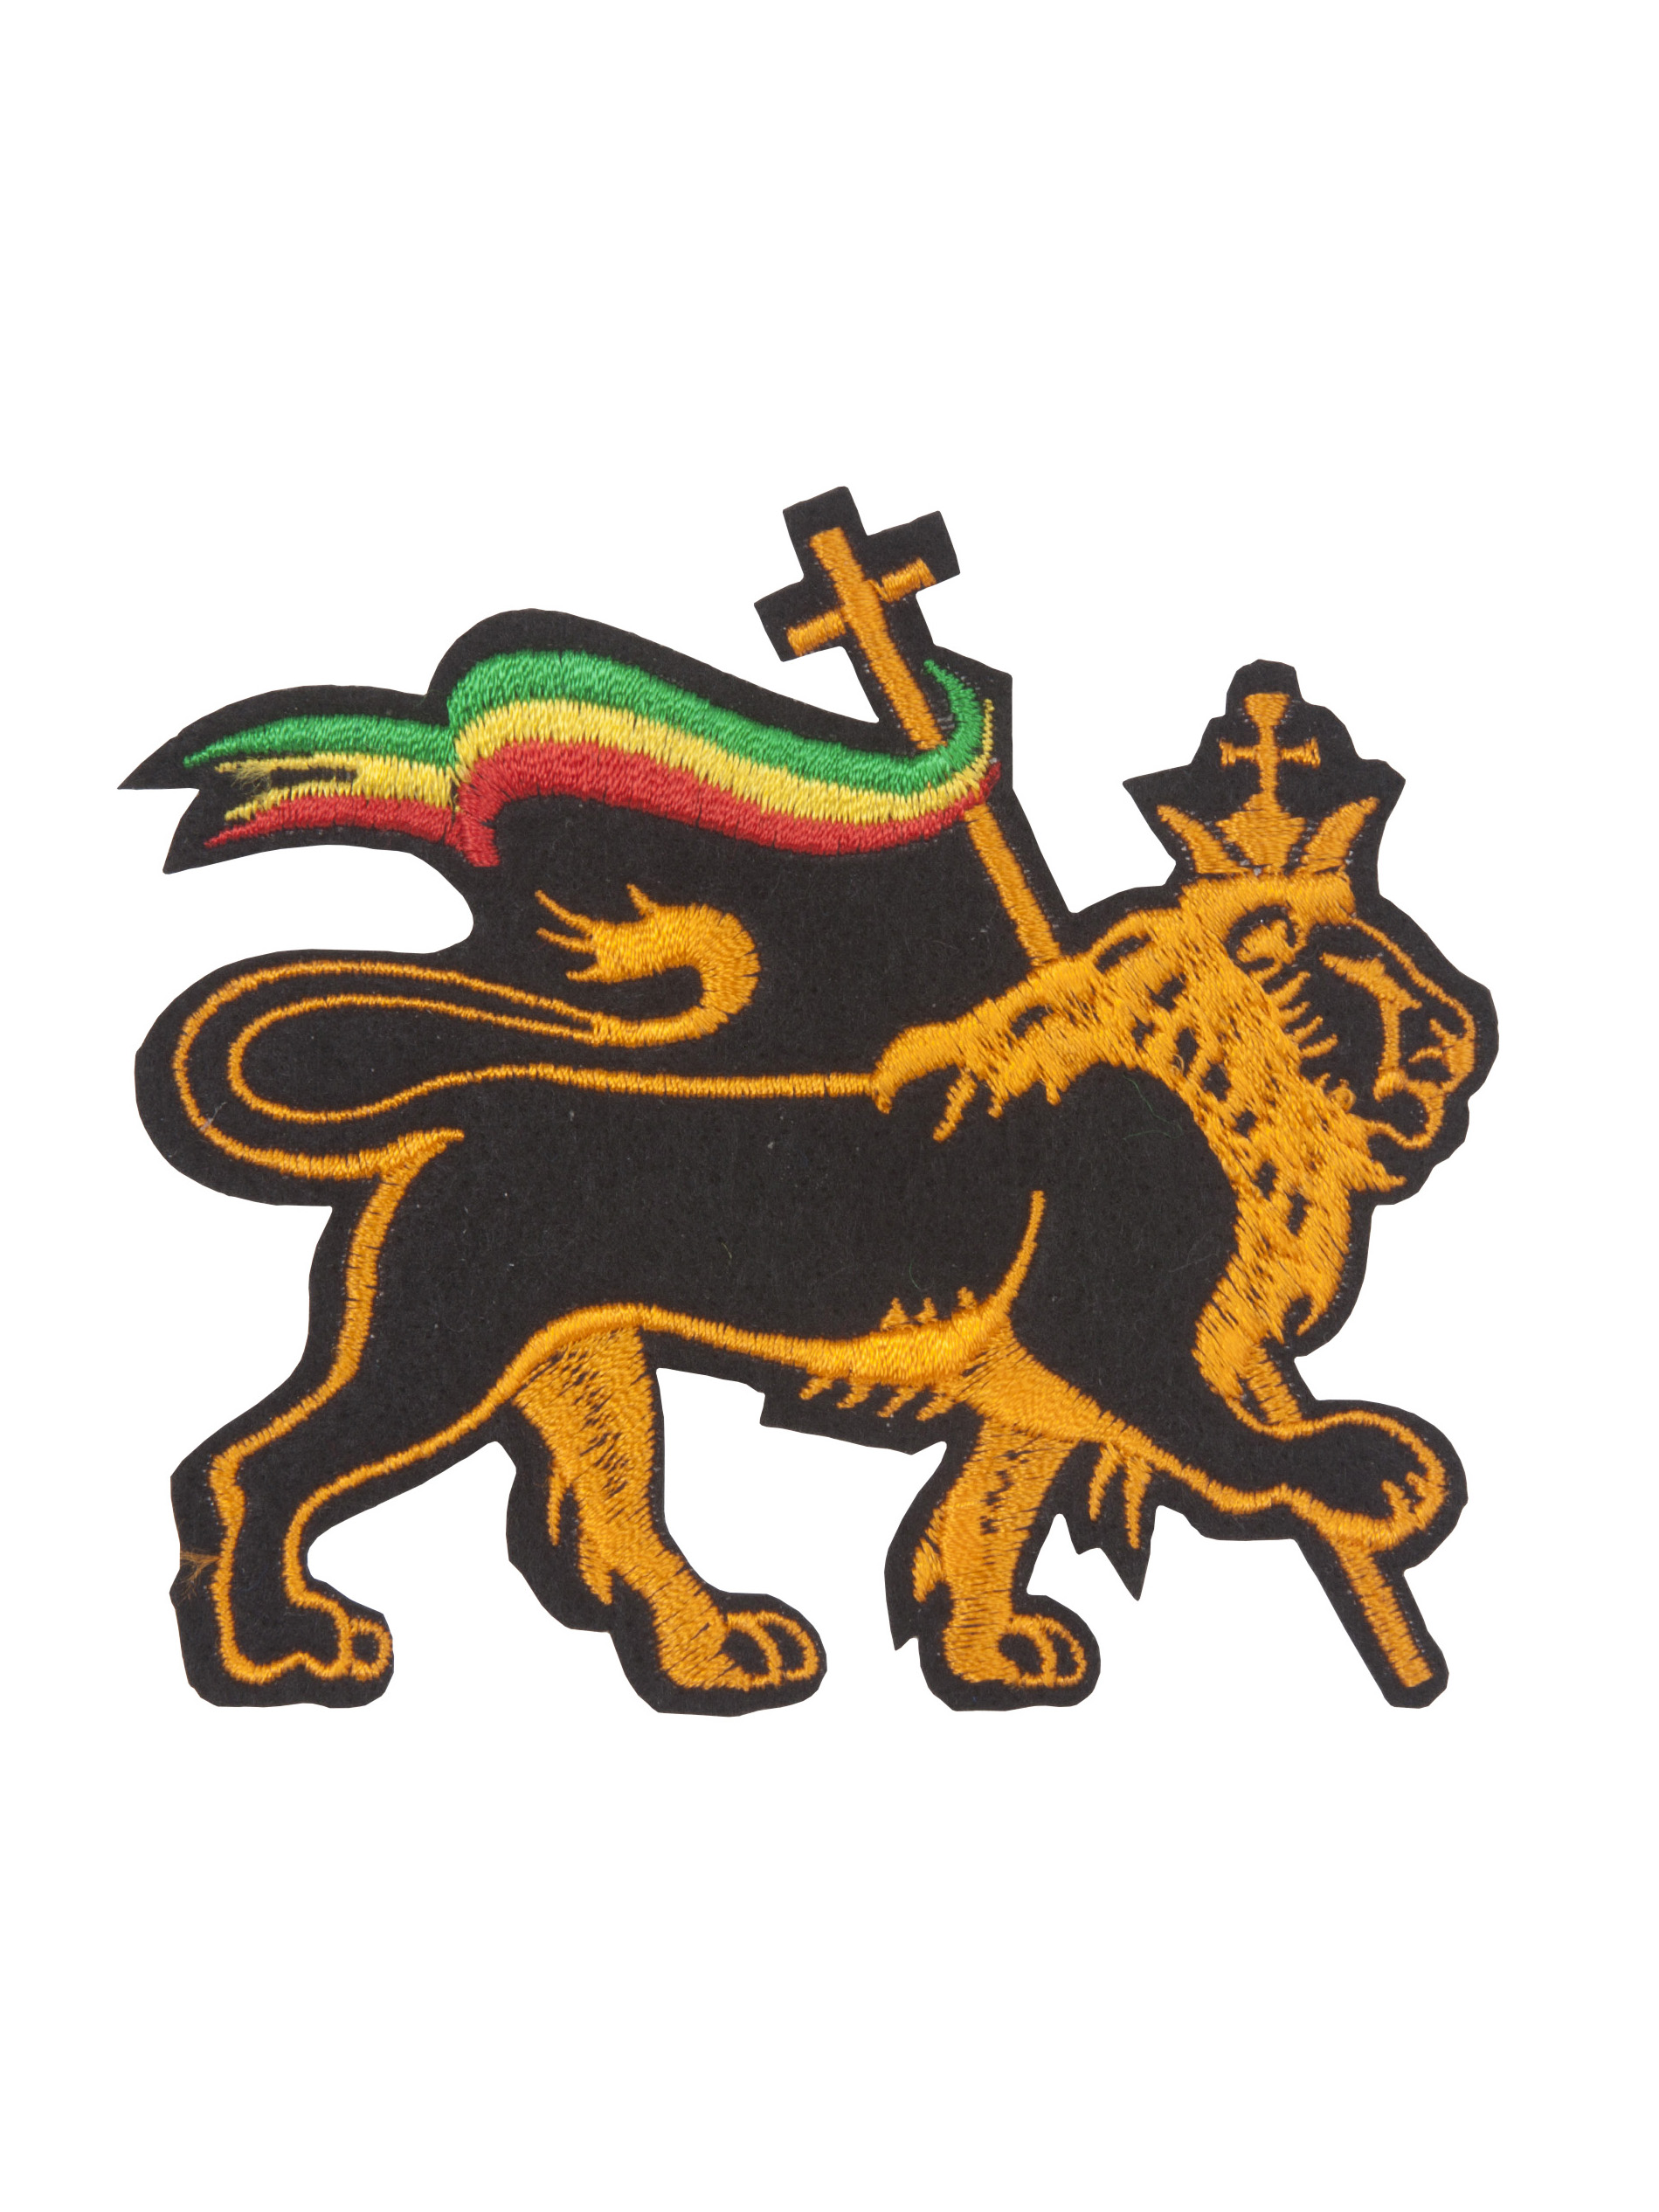 Rasta lion of judah patch image 1 of 1 zoomed image